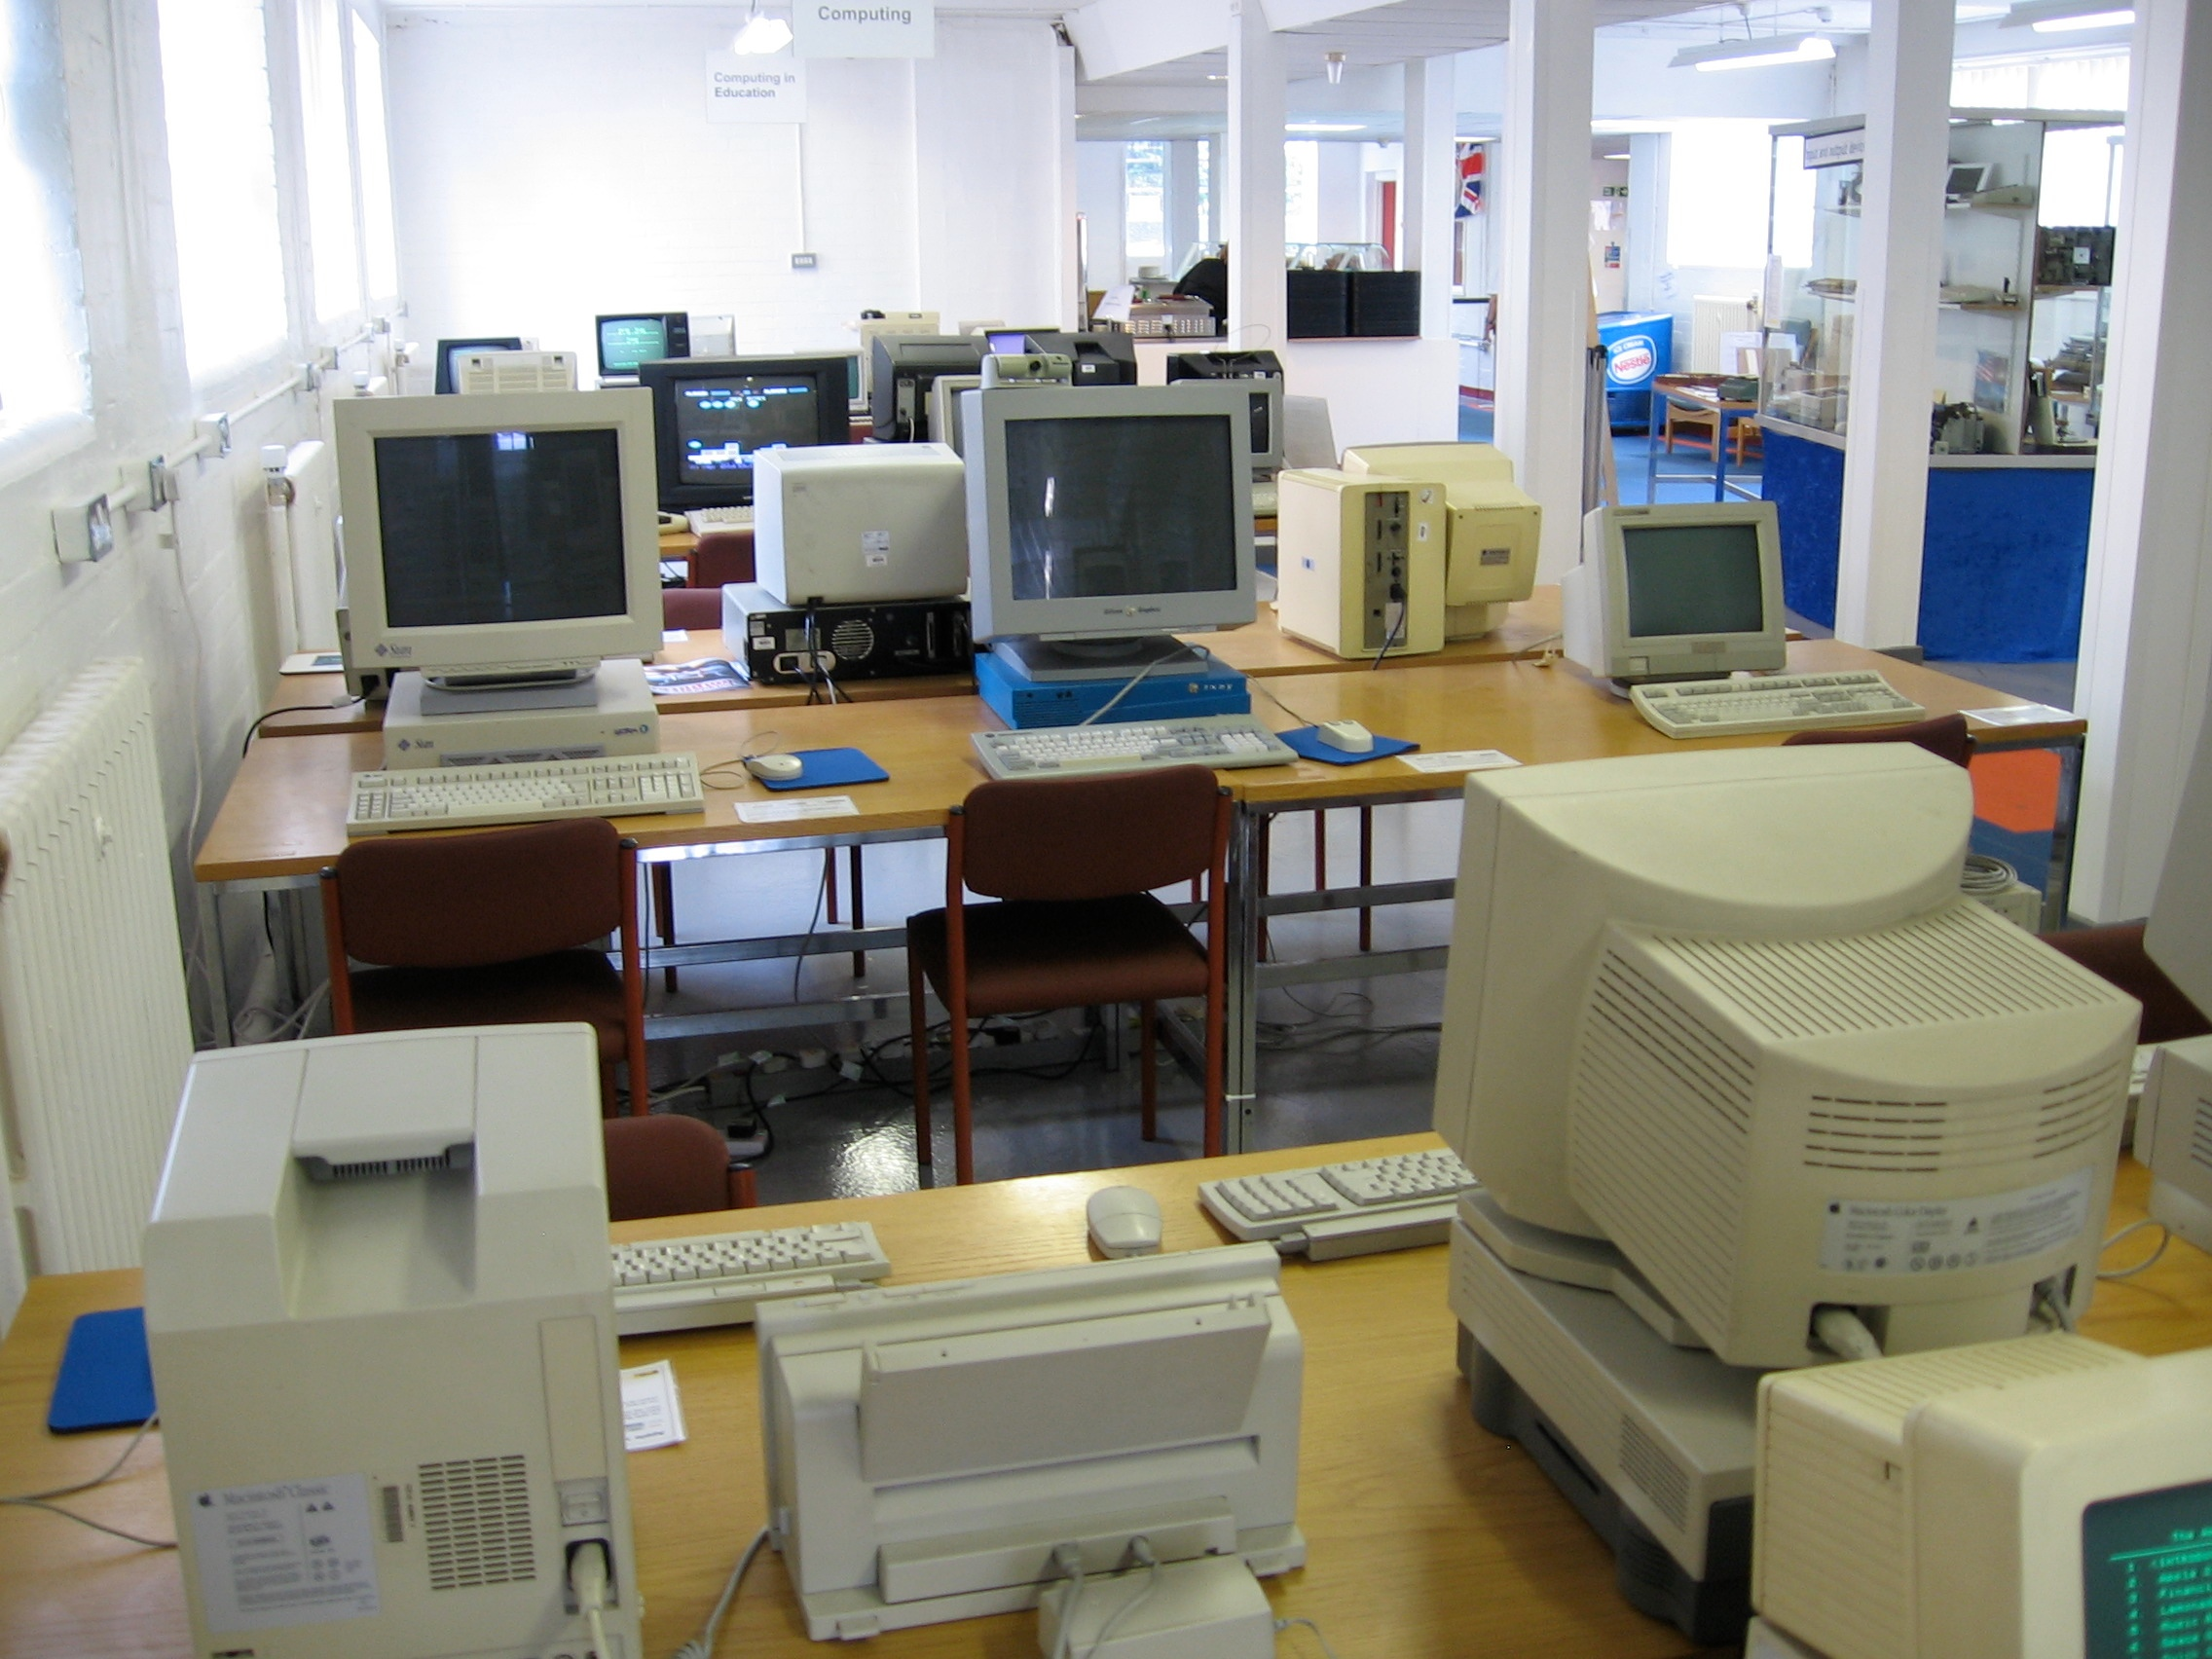 File:Working vintage computers at National Museum of